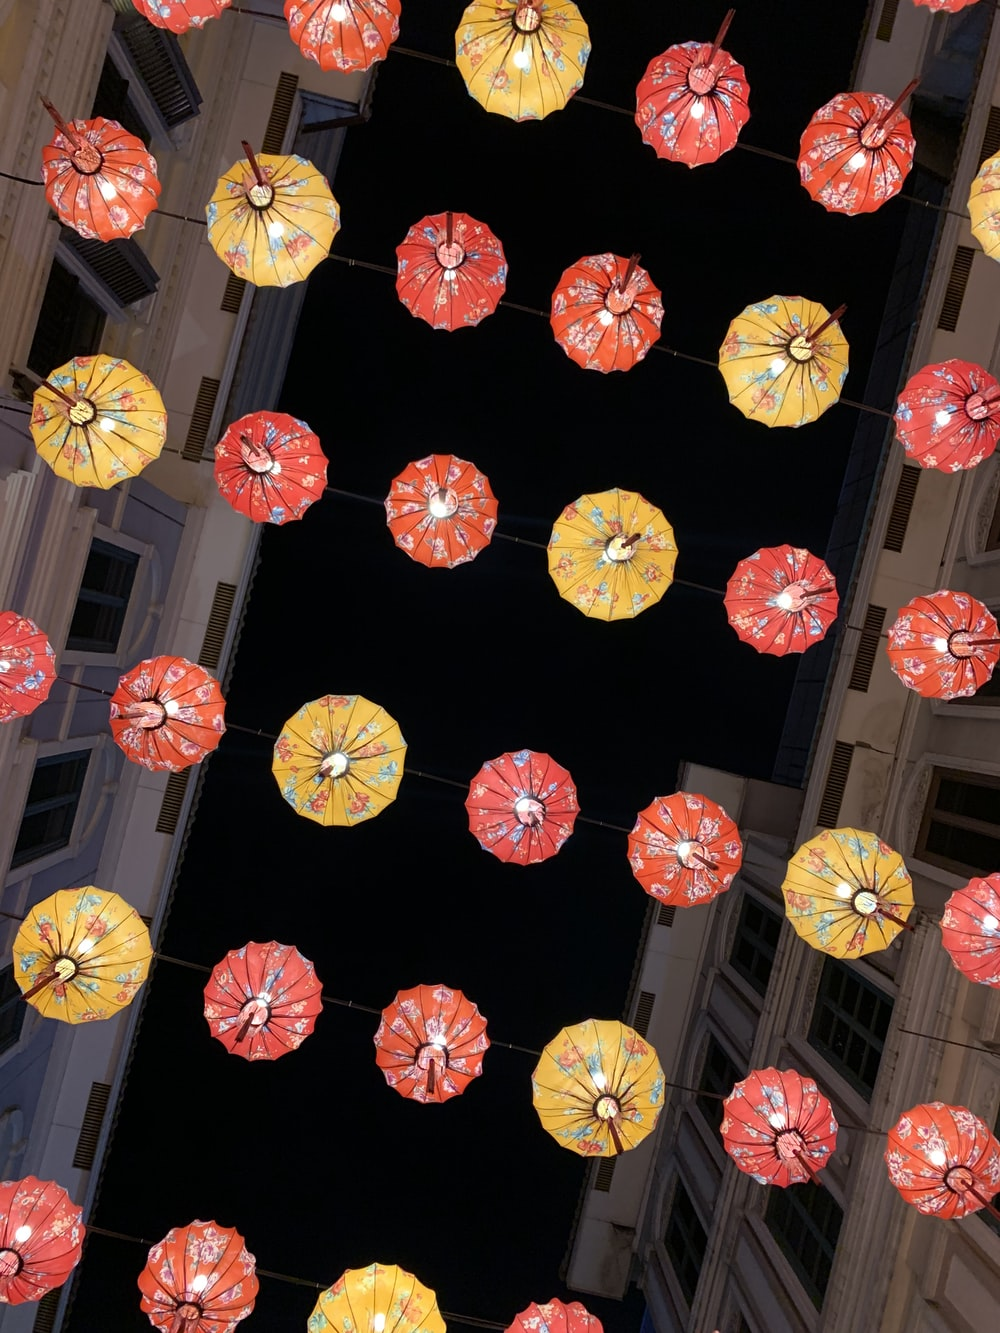 bunch of red and yellow paper lanterns during nighttime